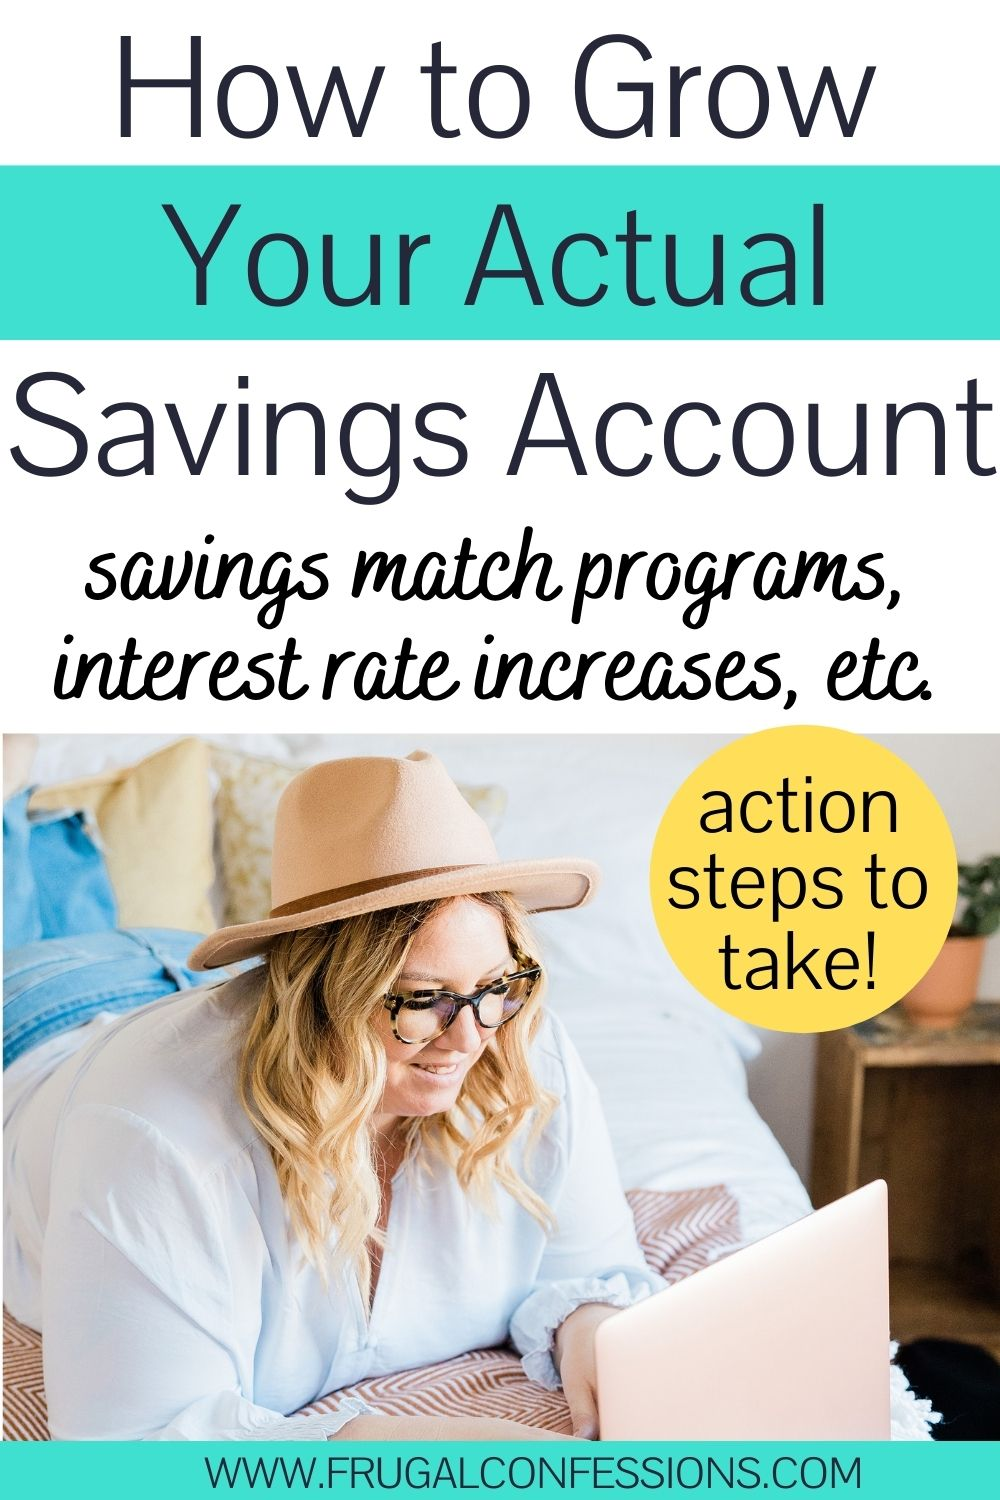 """young woman in hat on bed working on laptop, text overlay """"how to grow your actual savings account - savings match programs, interest rate increases, etc."""""""